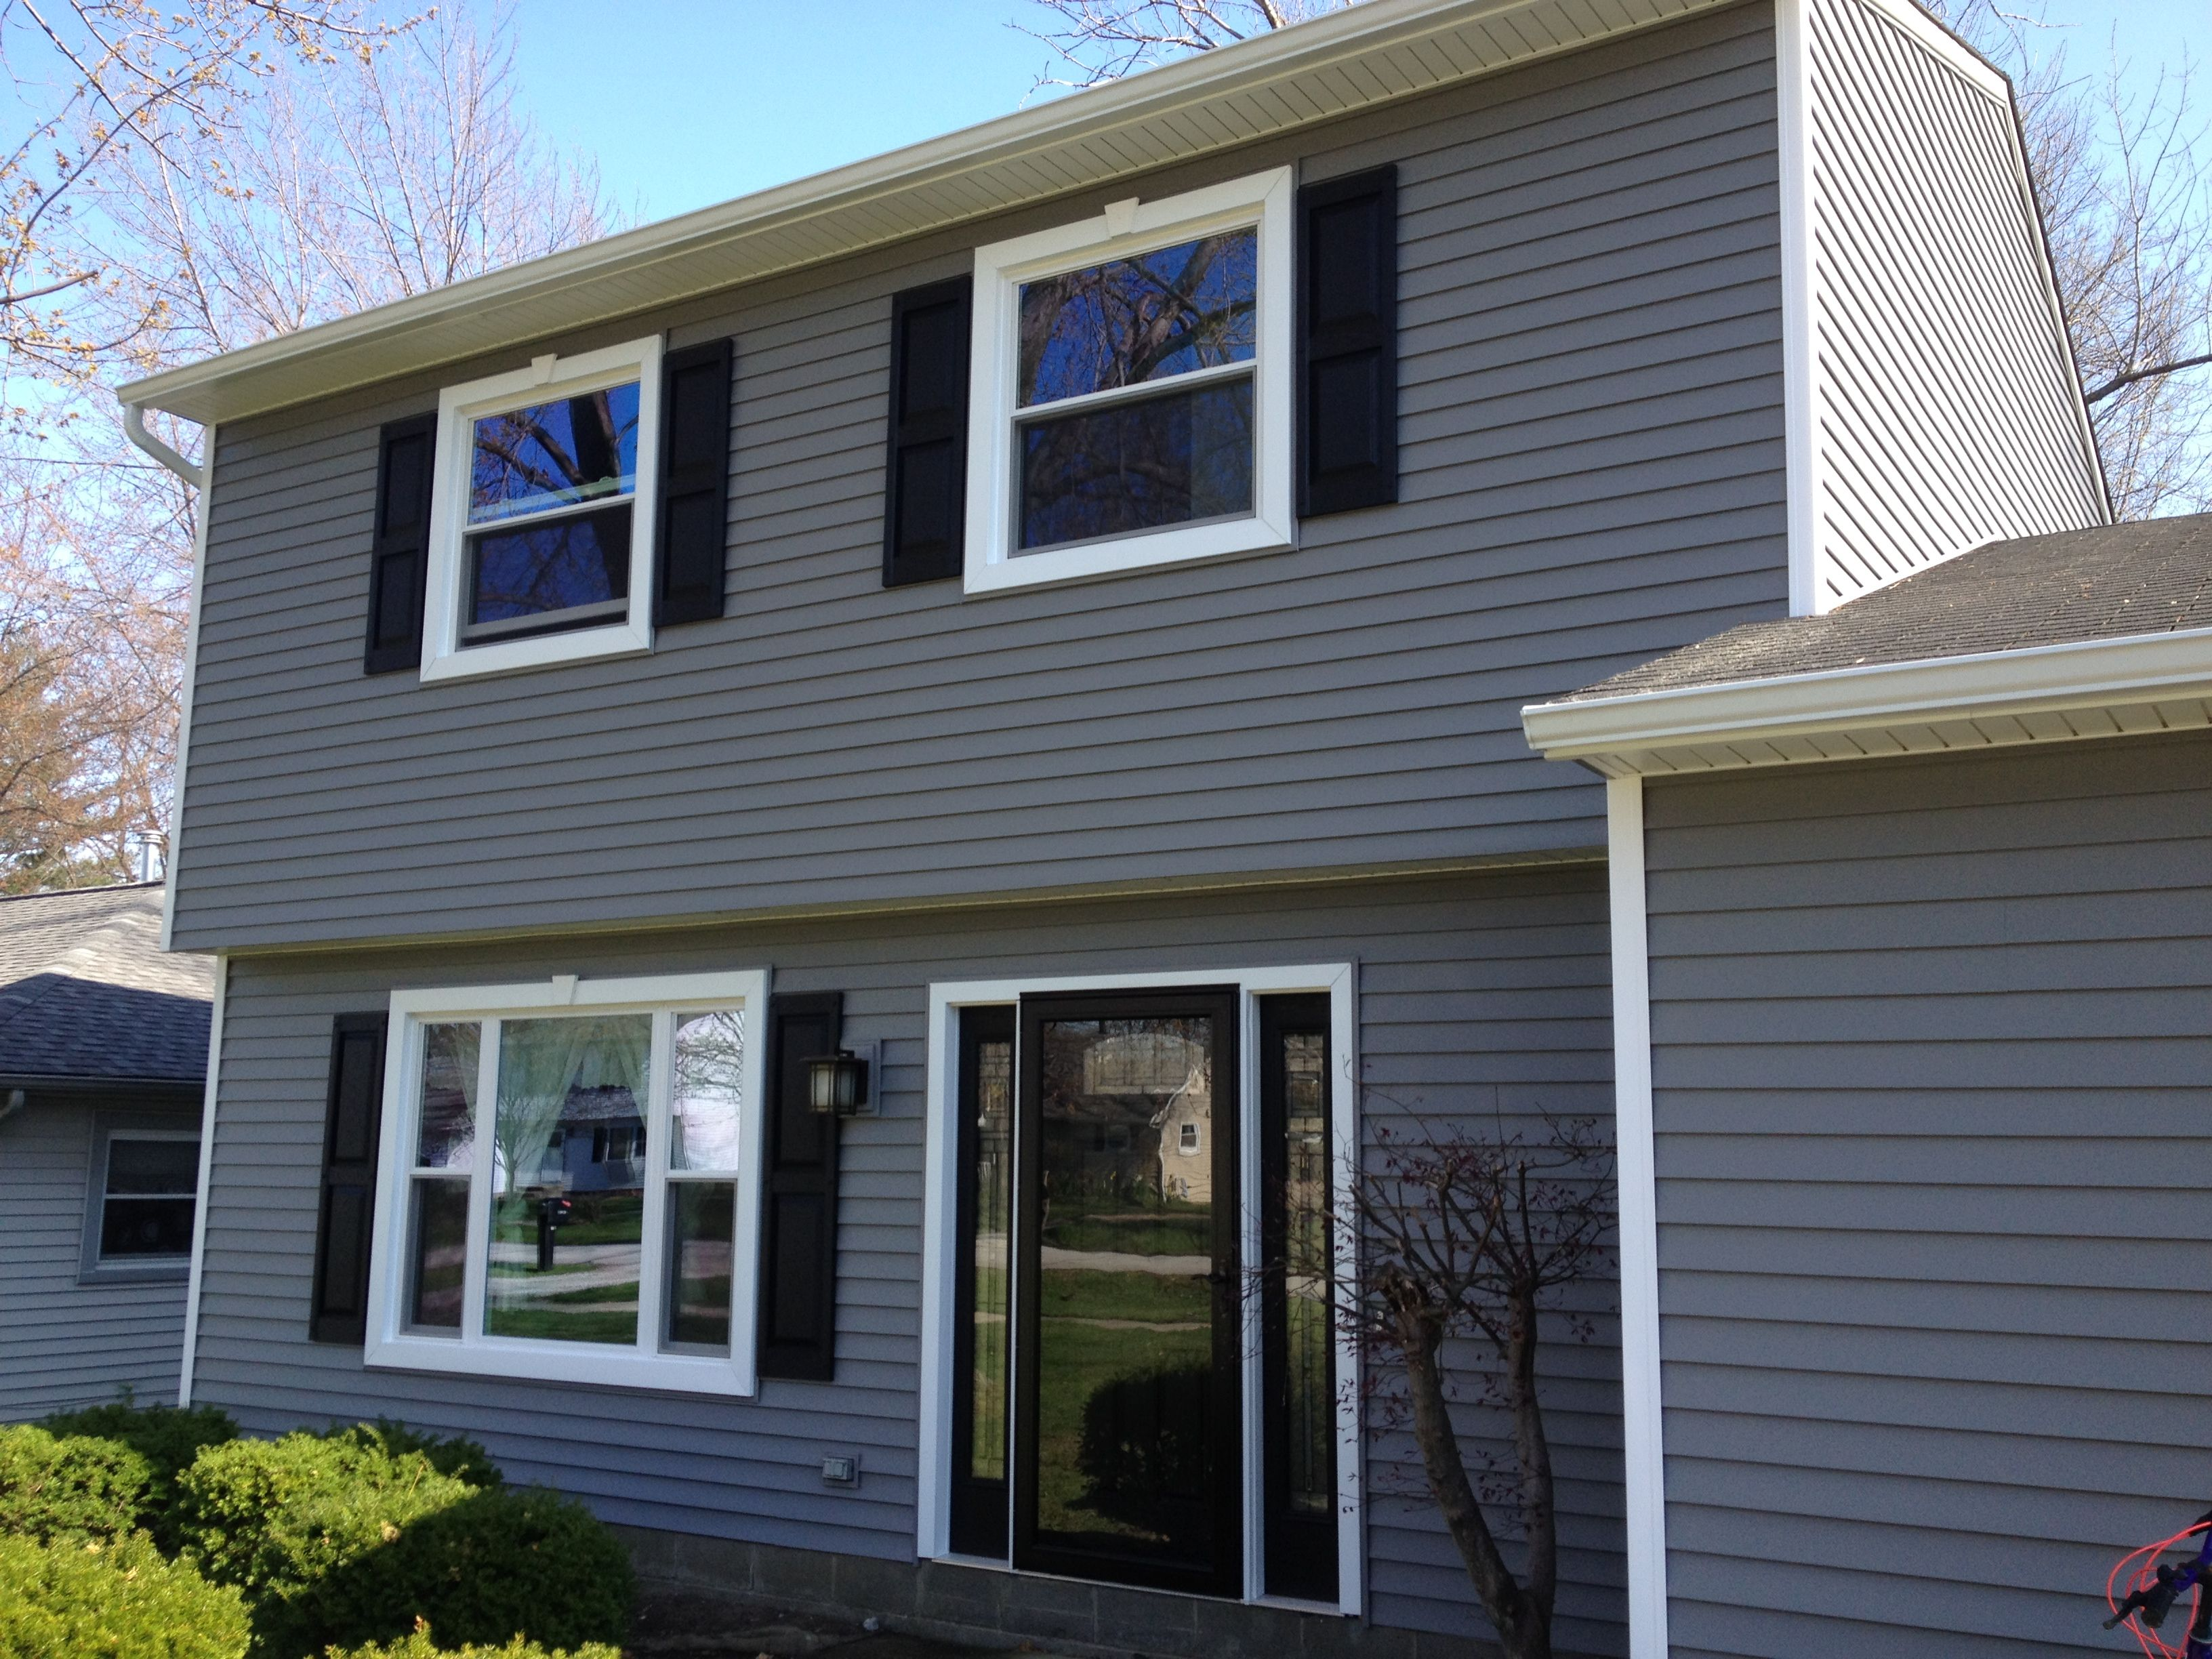 Diy how to install vinyl siding - Beautiful Certainteed American Legend Vinyl Siding Installation In The Color Charcoal We Also Installed New